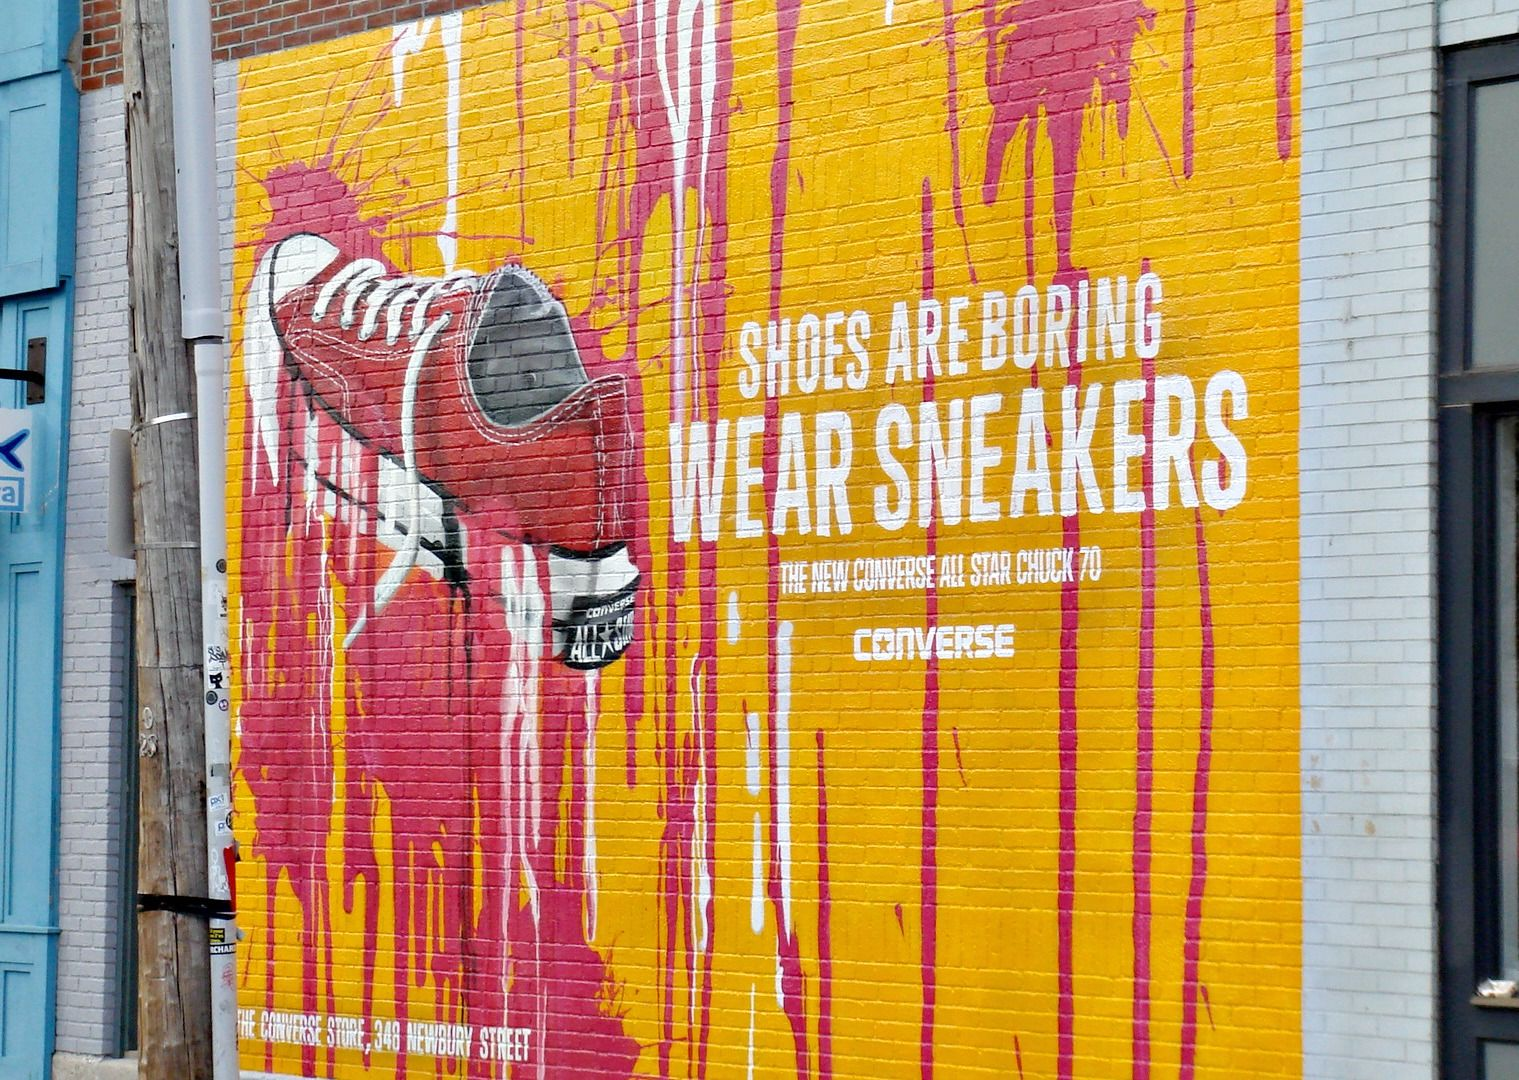 Shoes are boring. Wear sneakers. #Converse | Art and Illustration ...